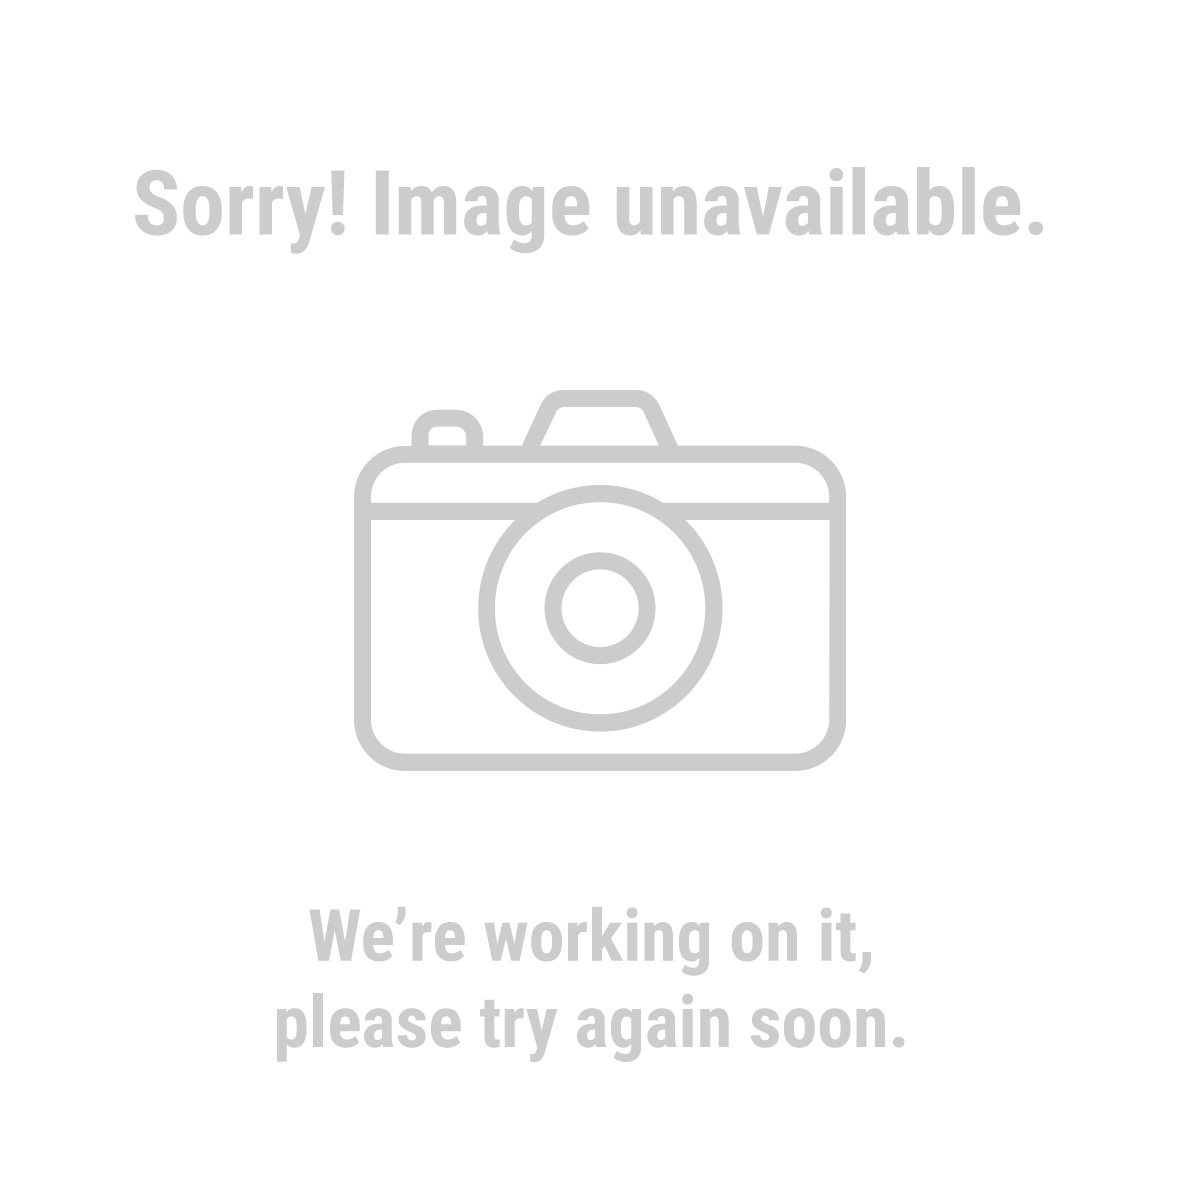 Haul-Master® 96479 Solid Rubber Wheel Chock